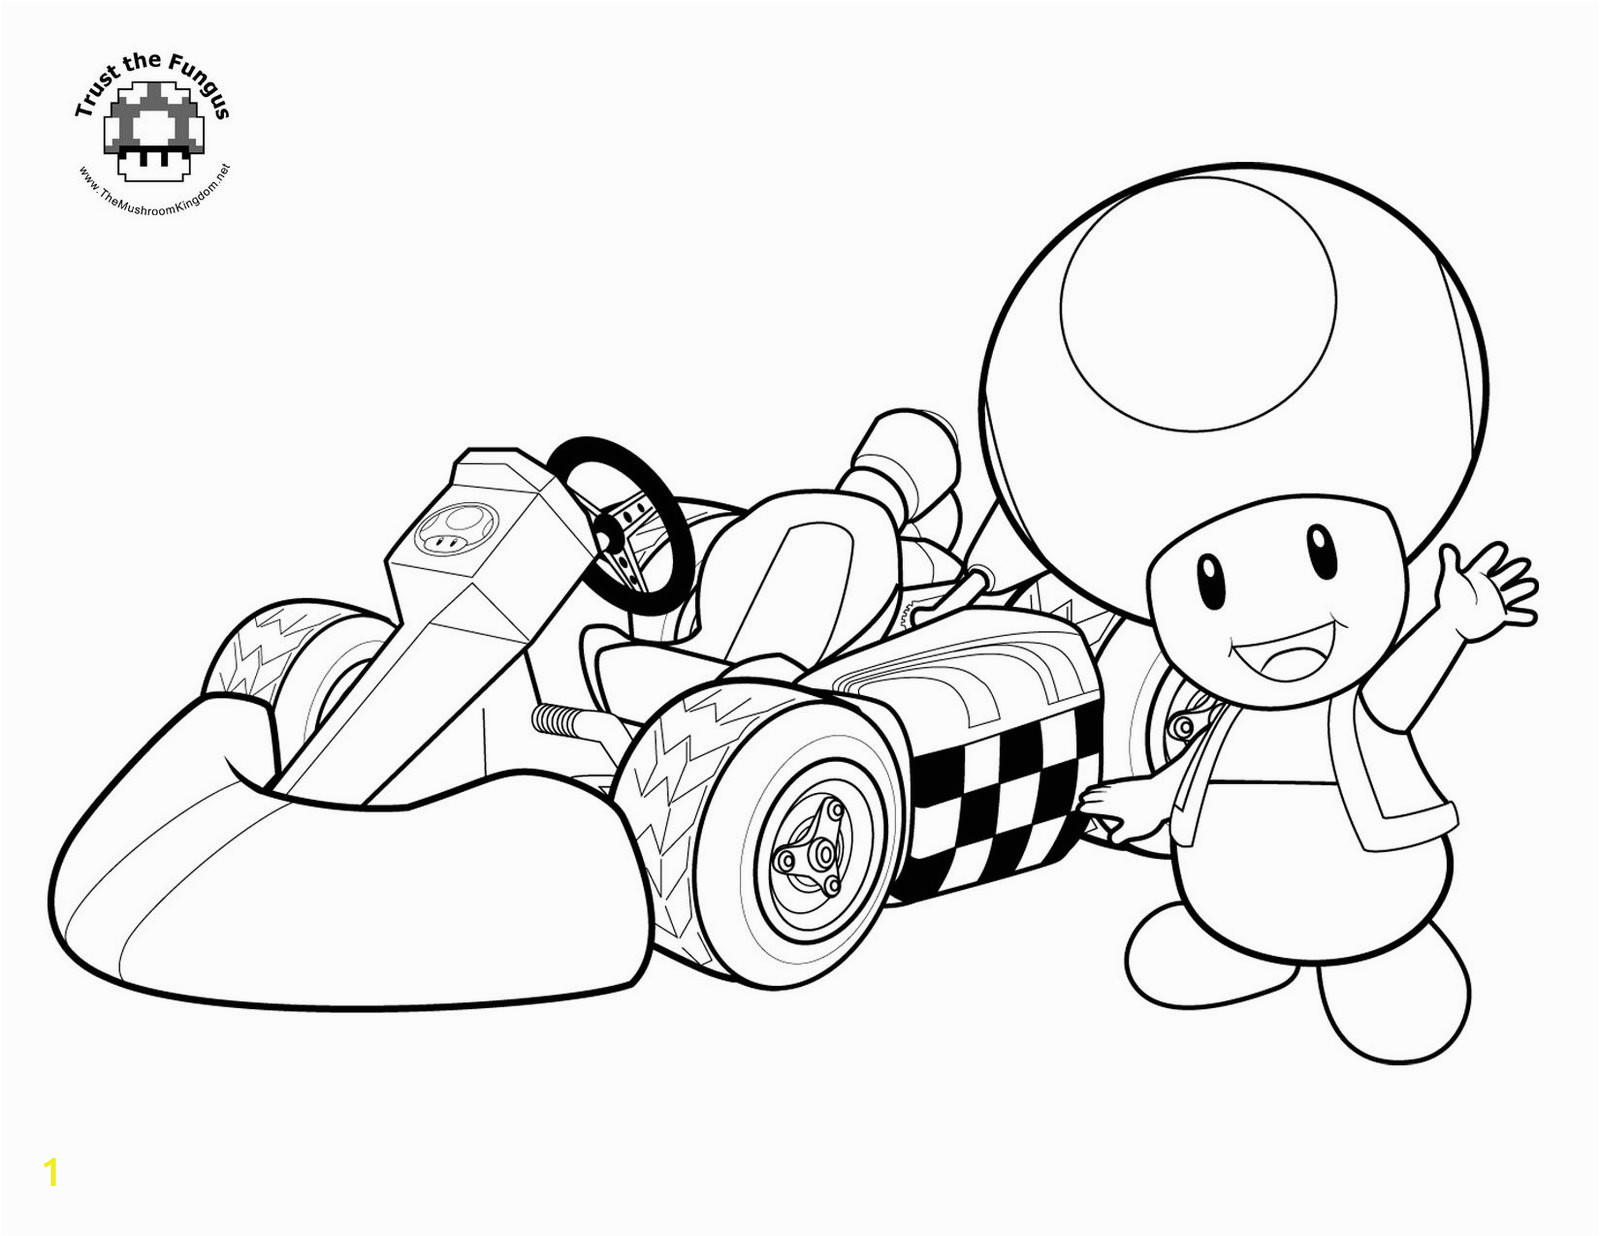 164b52ce9478ecc770a9deb357abfb1b 28 collection of mario kart 7 coloring pages high quality free 1600 1236